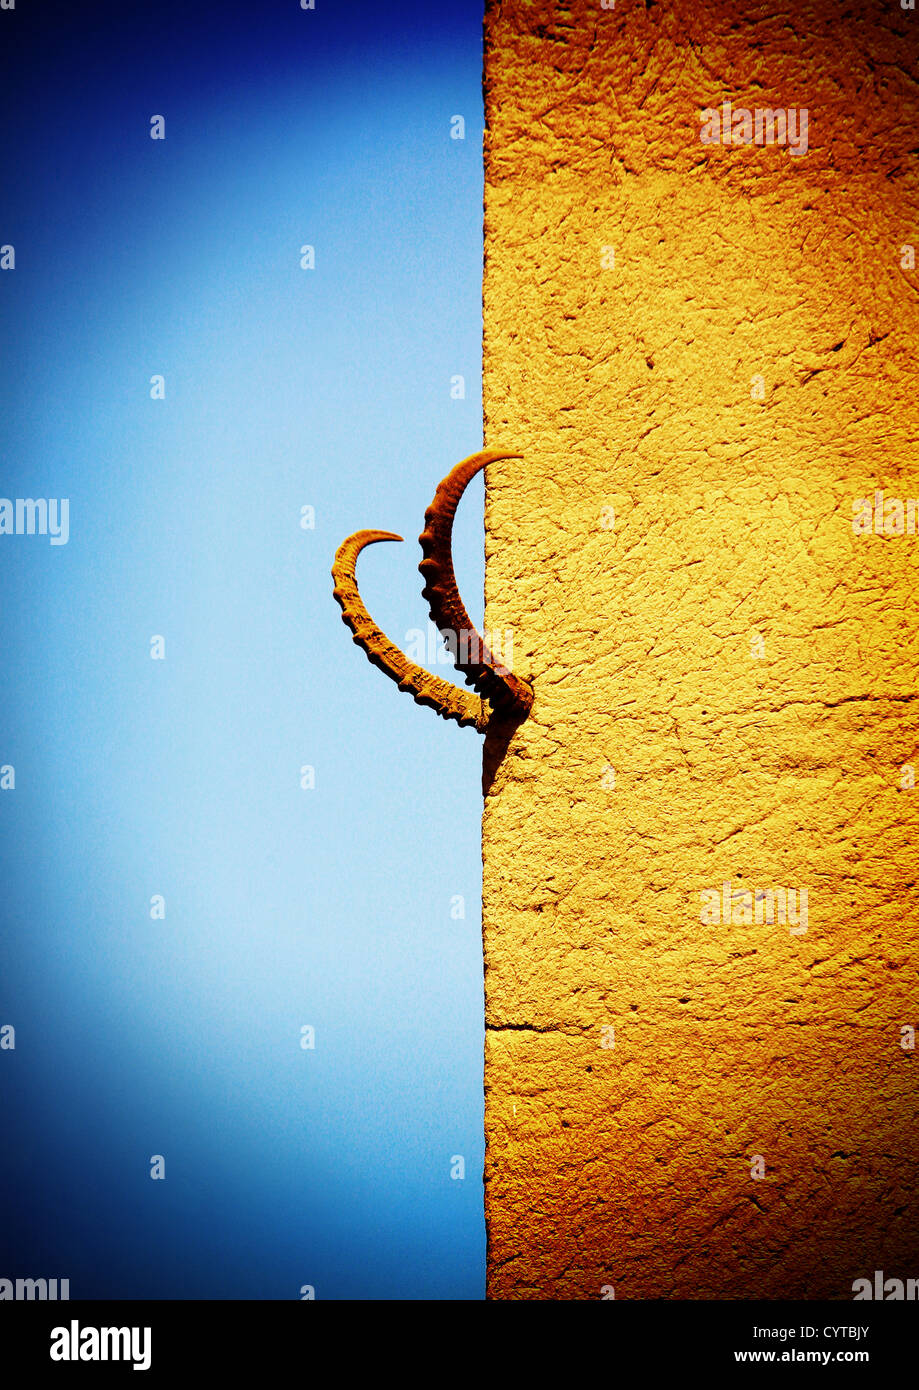 Ibex Horns Hung On The Wall Of A House, Wadi Doan, Yemen - Stock Image